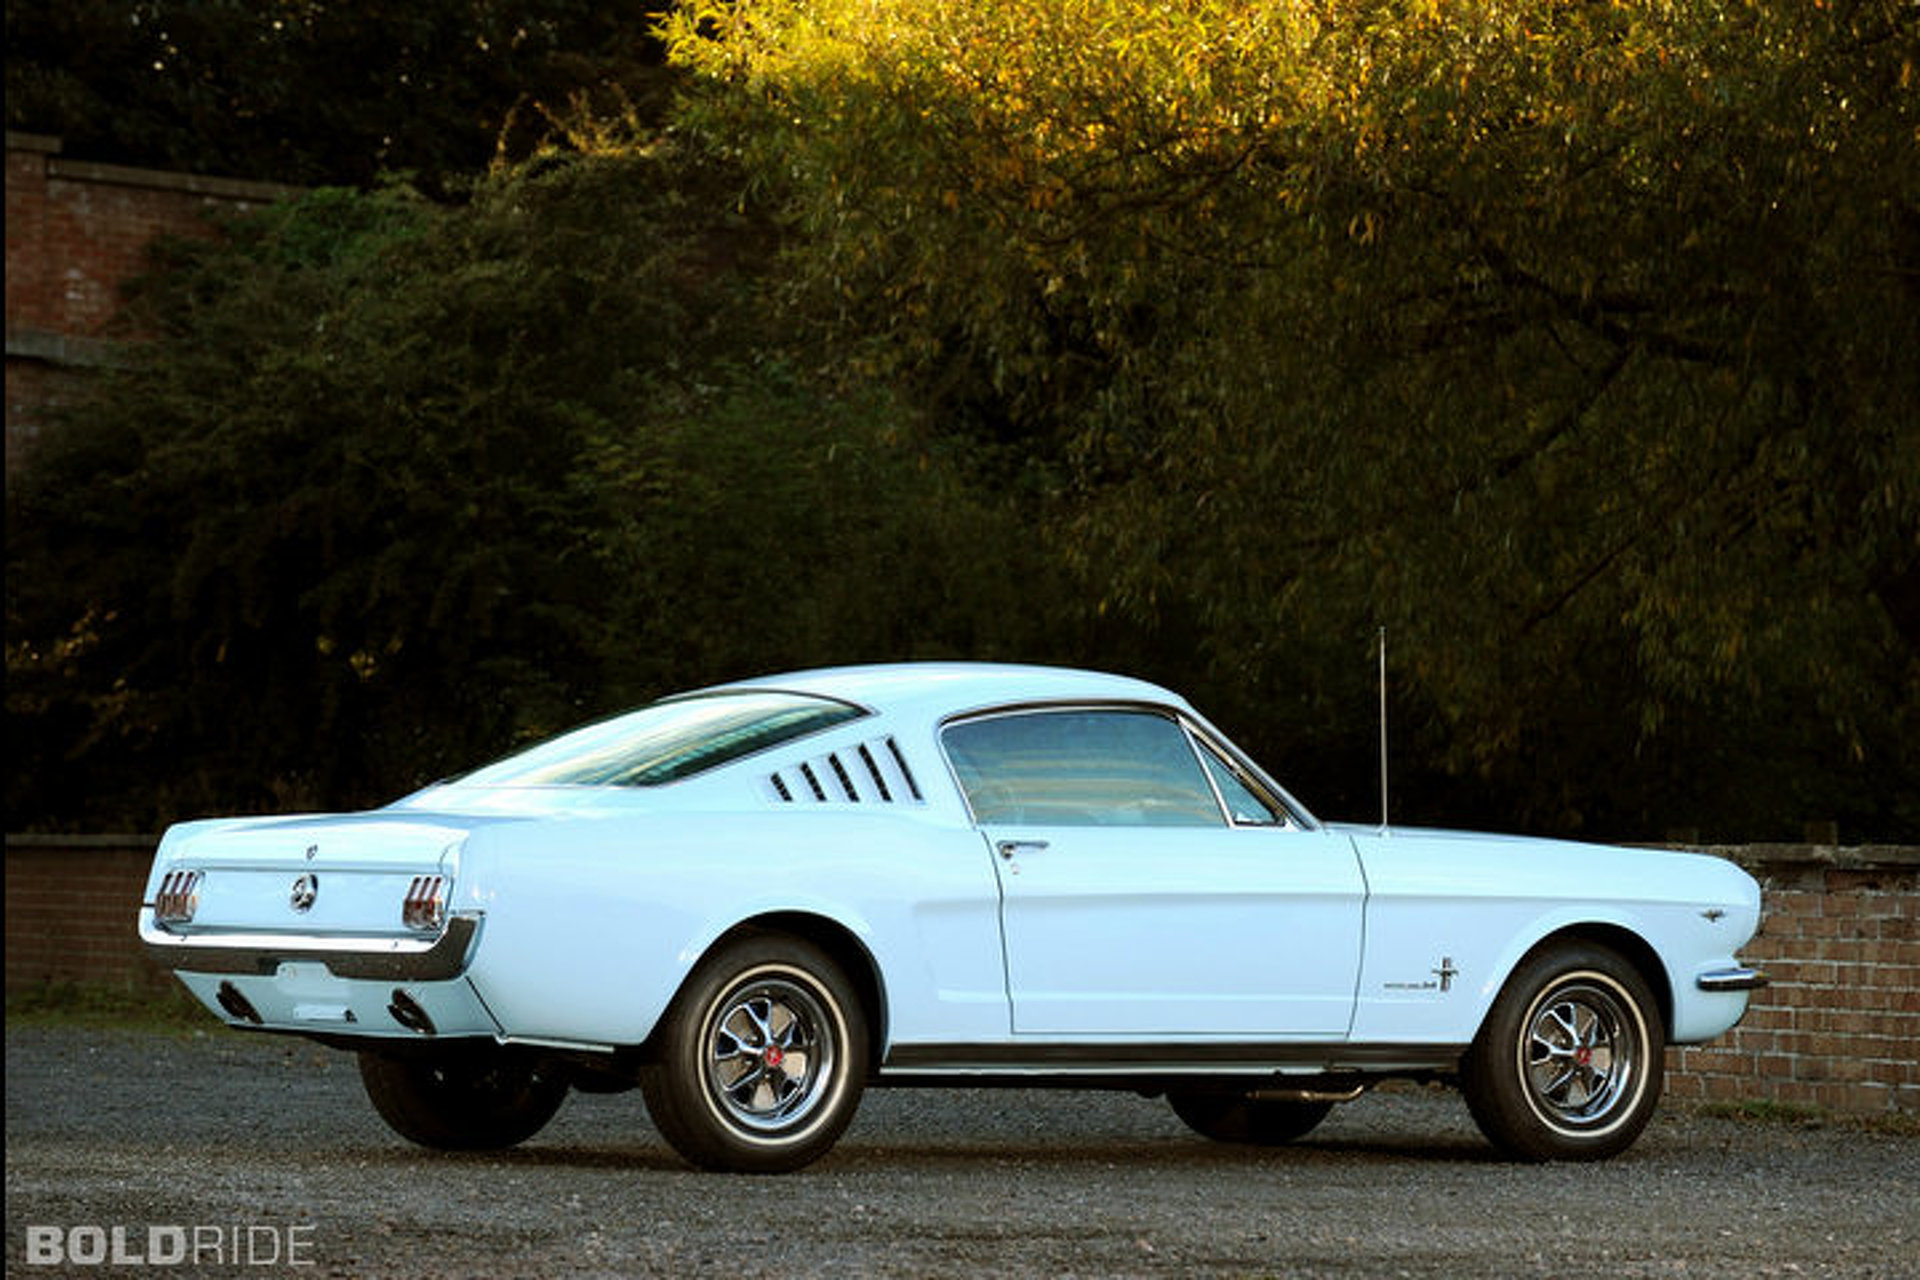 The 1965 Ford Mustang: Cool, Defined